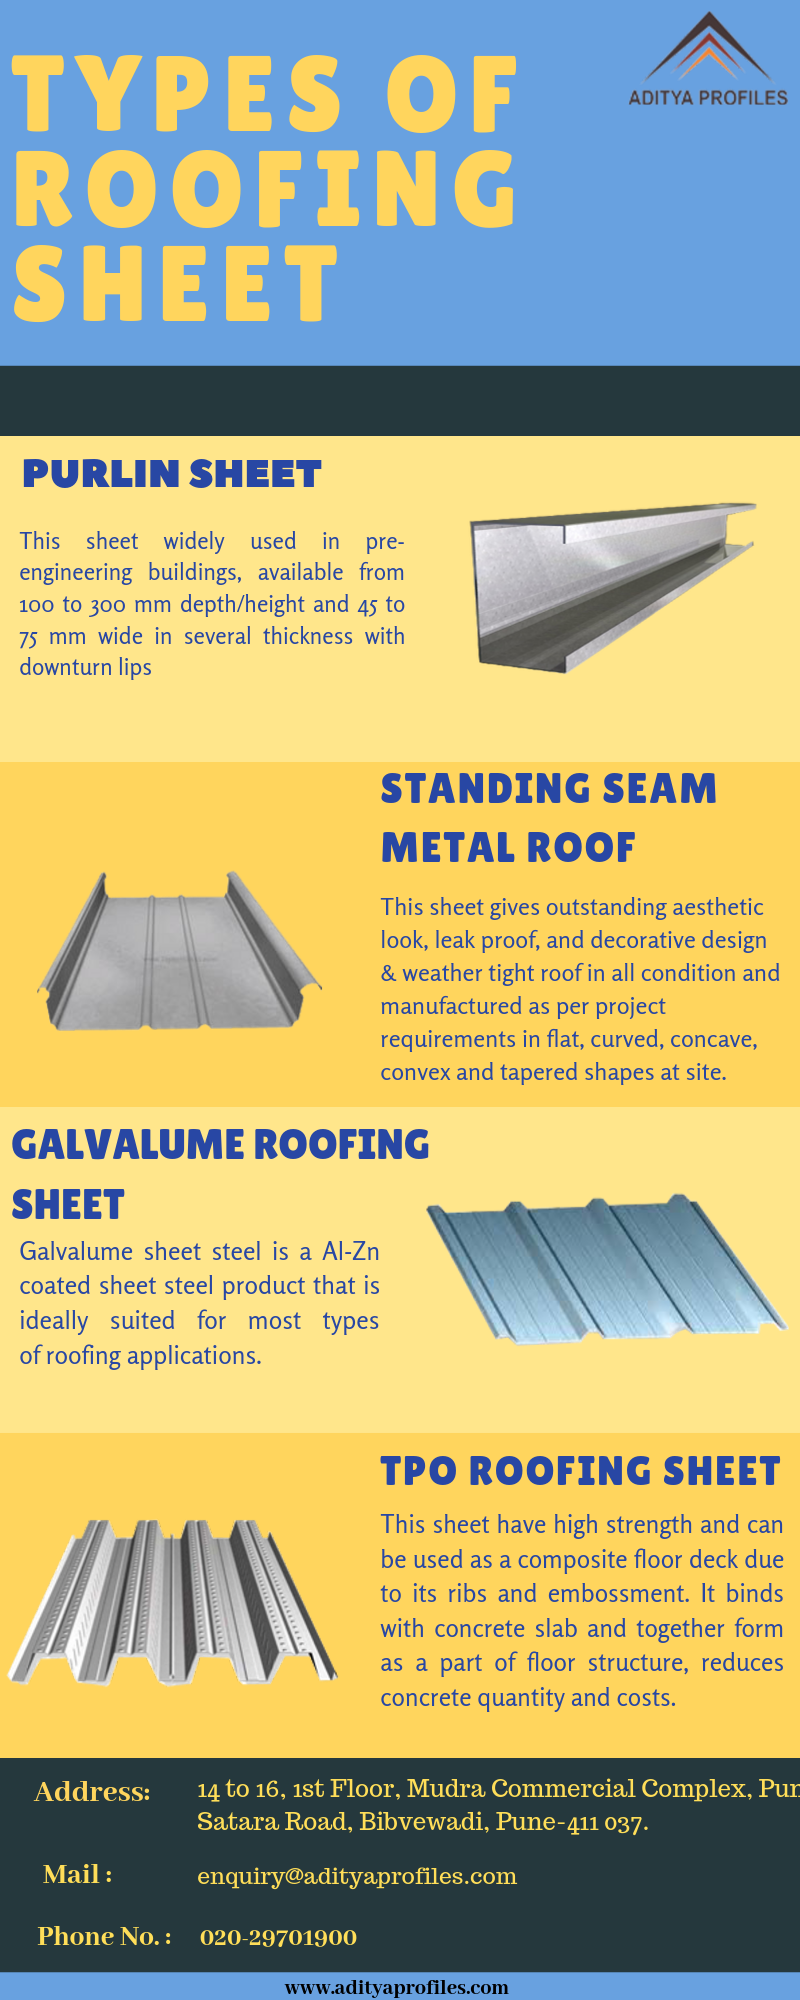 Aditya Profiles Is The Leading Roof Sheet Manufacturer And Supplier They Provides Sheet Eg Metal Roofing Sheets Roofing Standing Seam Metal Roof Roofing Sheets